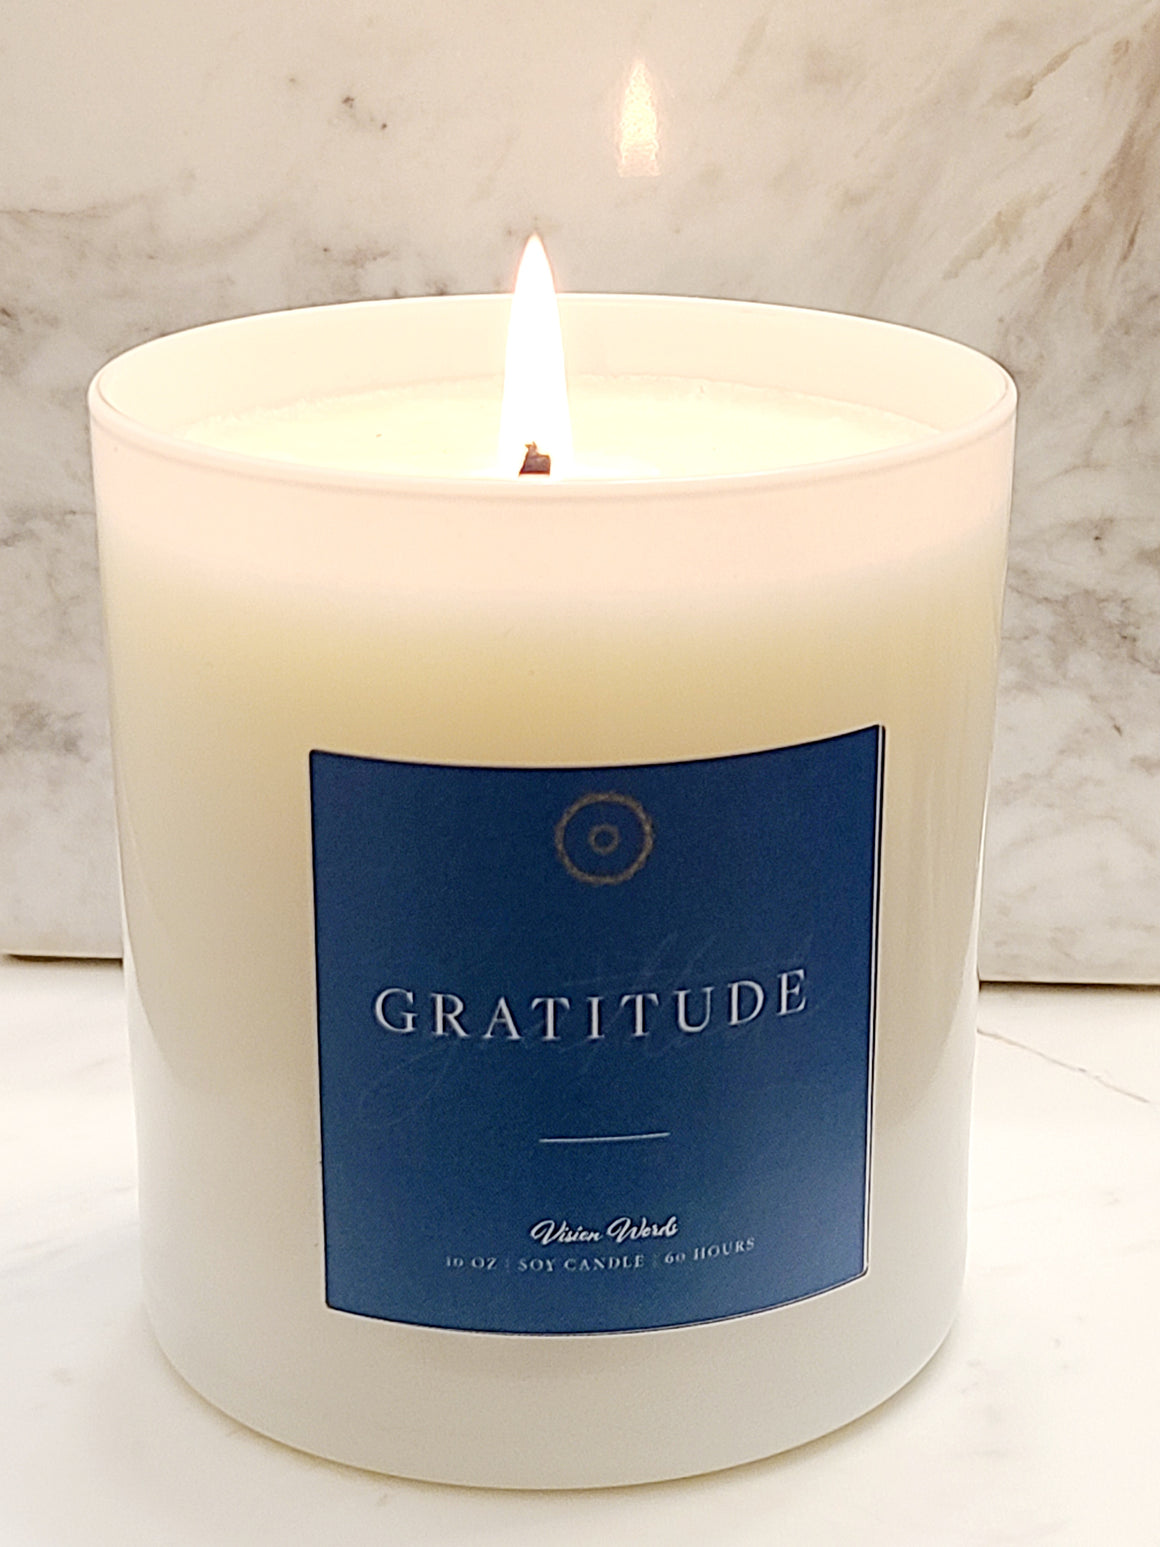 GRATITUDE  10 oz Luxury Soy Candle with Vision Words